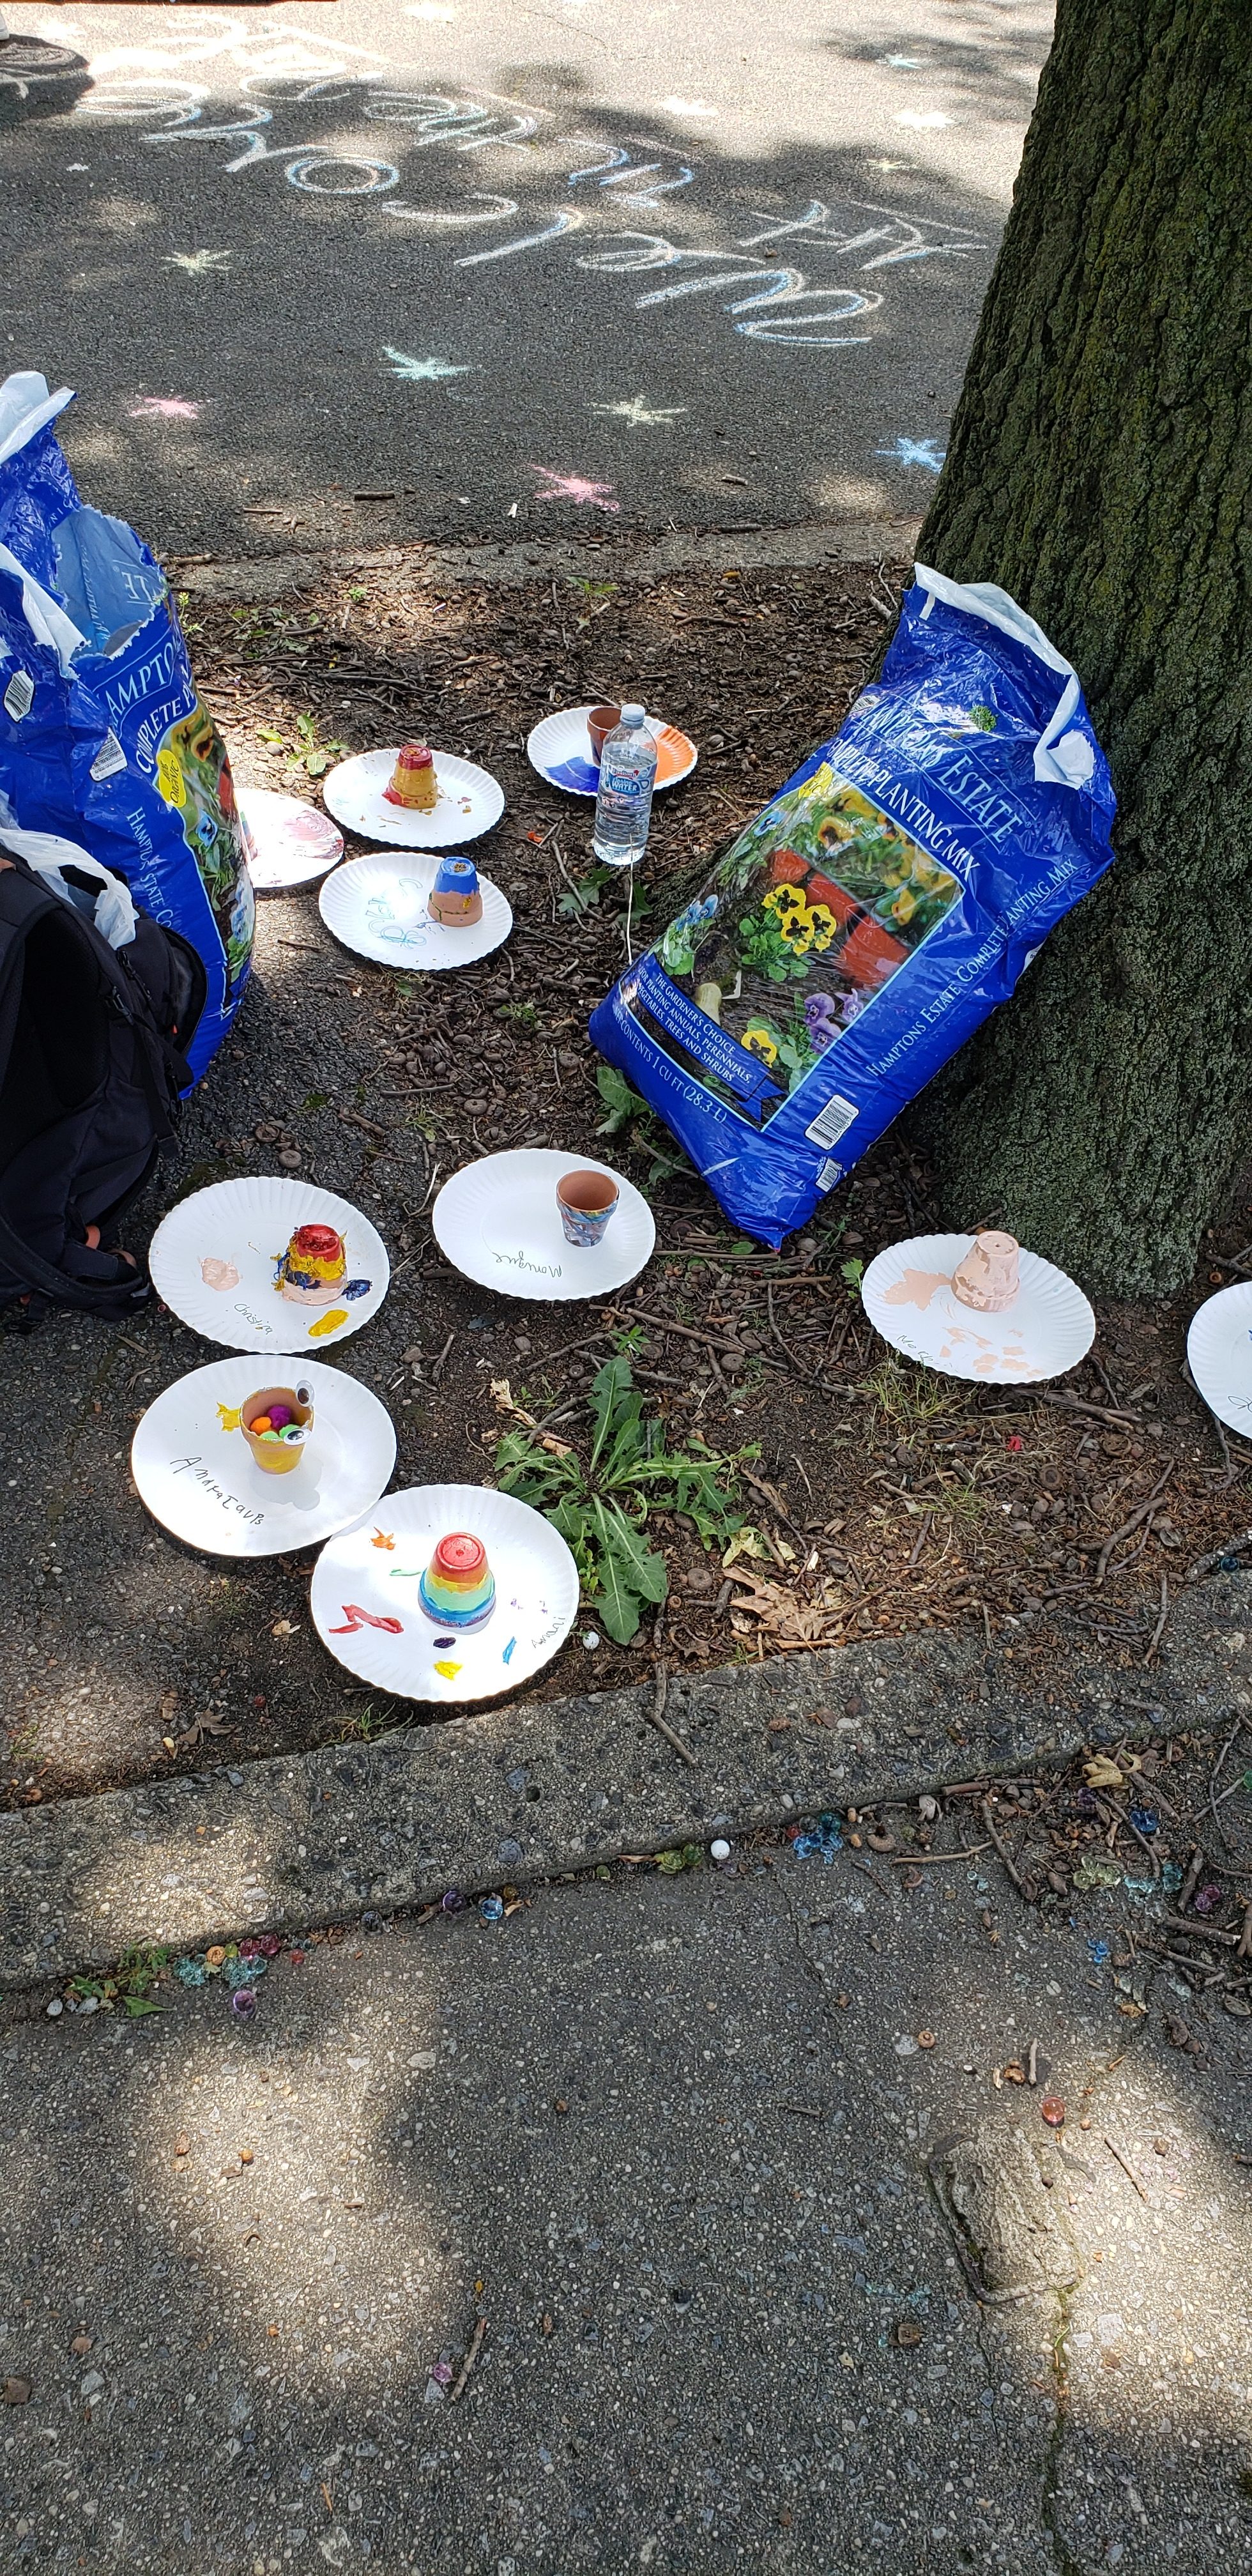 Painted flower pots arranged on plates dry beside a tree. There are names on the plates that denote whose pot is whose, but the writing is difficult to discern at this distance. In the middle of the pots are two large bags of soil. In the background can be seen a sidewalk chalk welcome to Autism Family Fun Day.